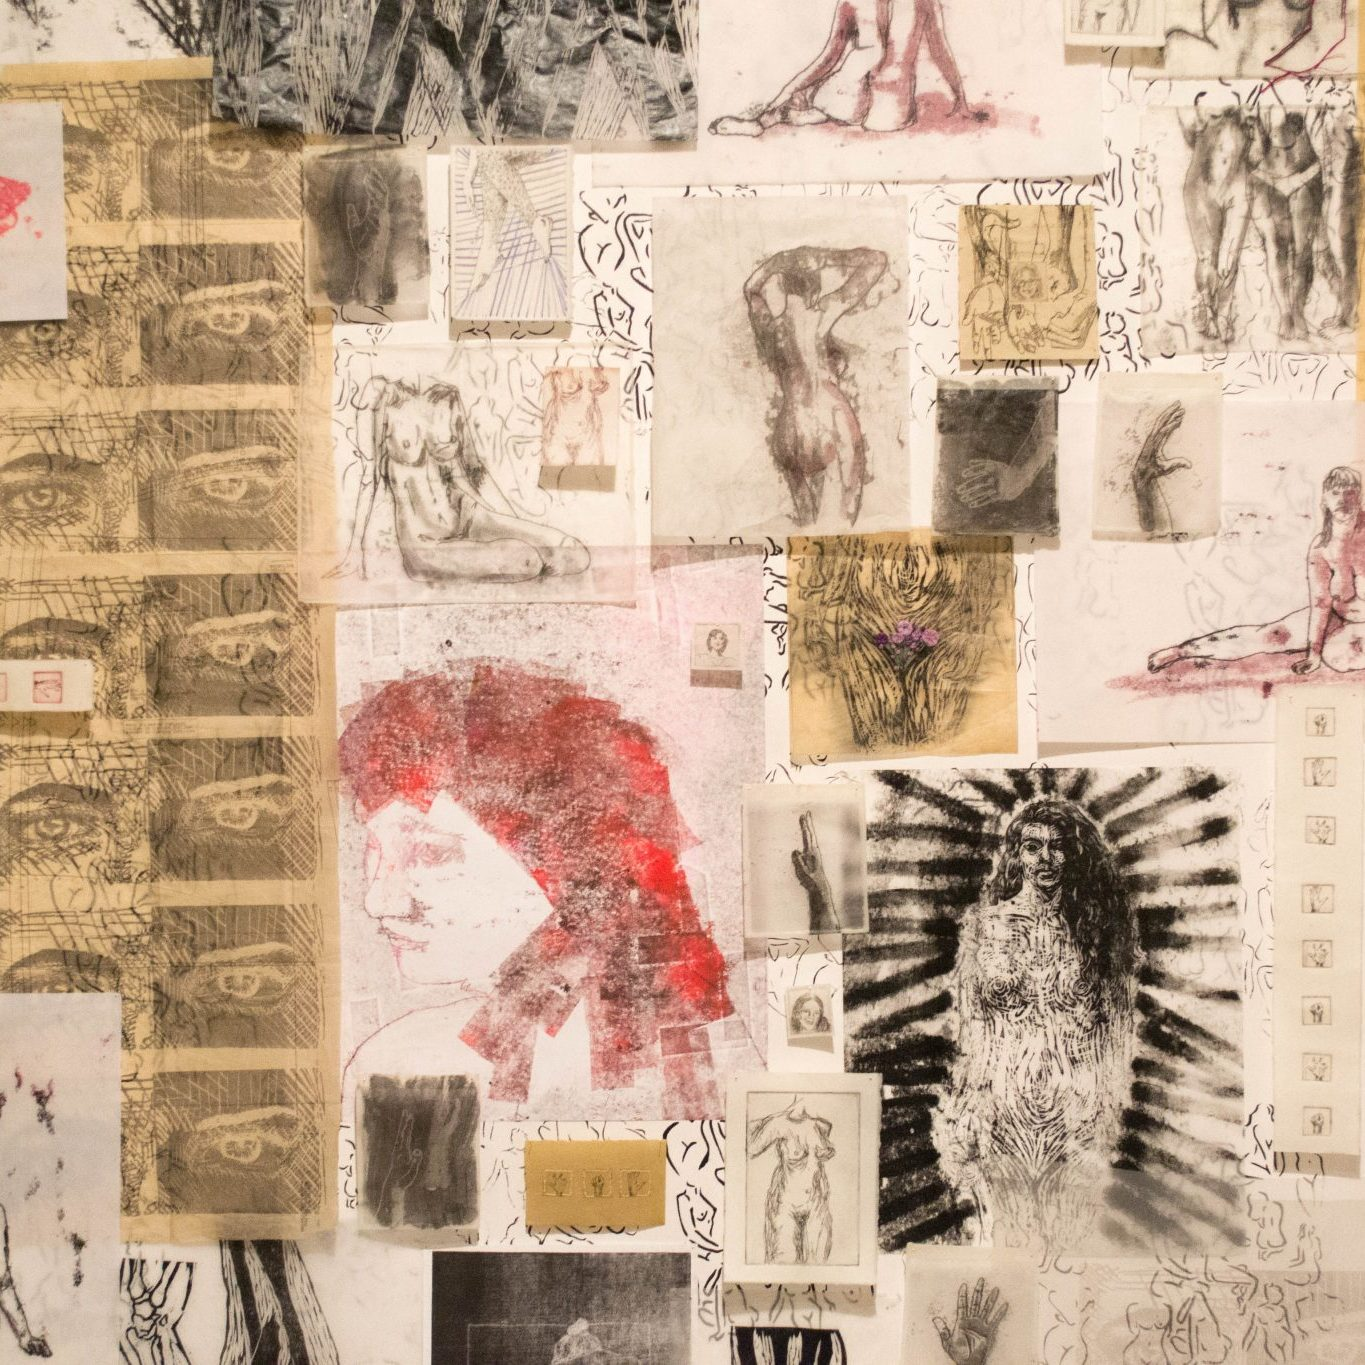 Multiple pieces of white and tan paper in different sizes featuring balck and red sketches of bodies, body parts, and faces are layered over each other on a wall using pins.